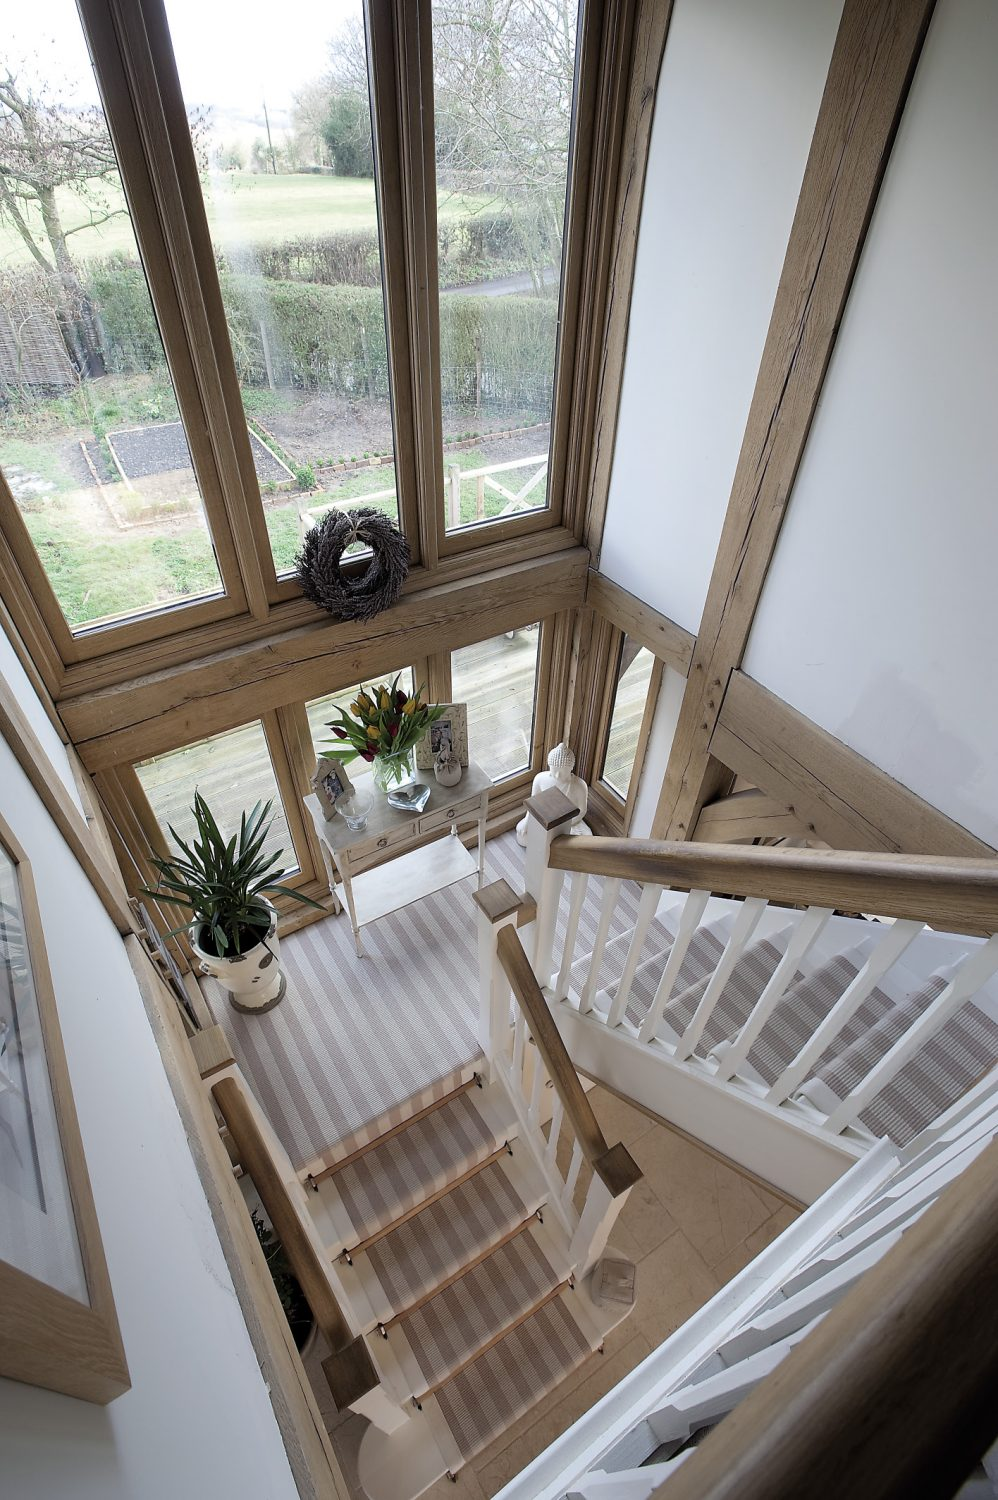 The huge windows frame views of the developing rear garden and provide a wonderful view from the spacious and airy landing